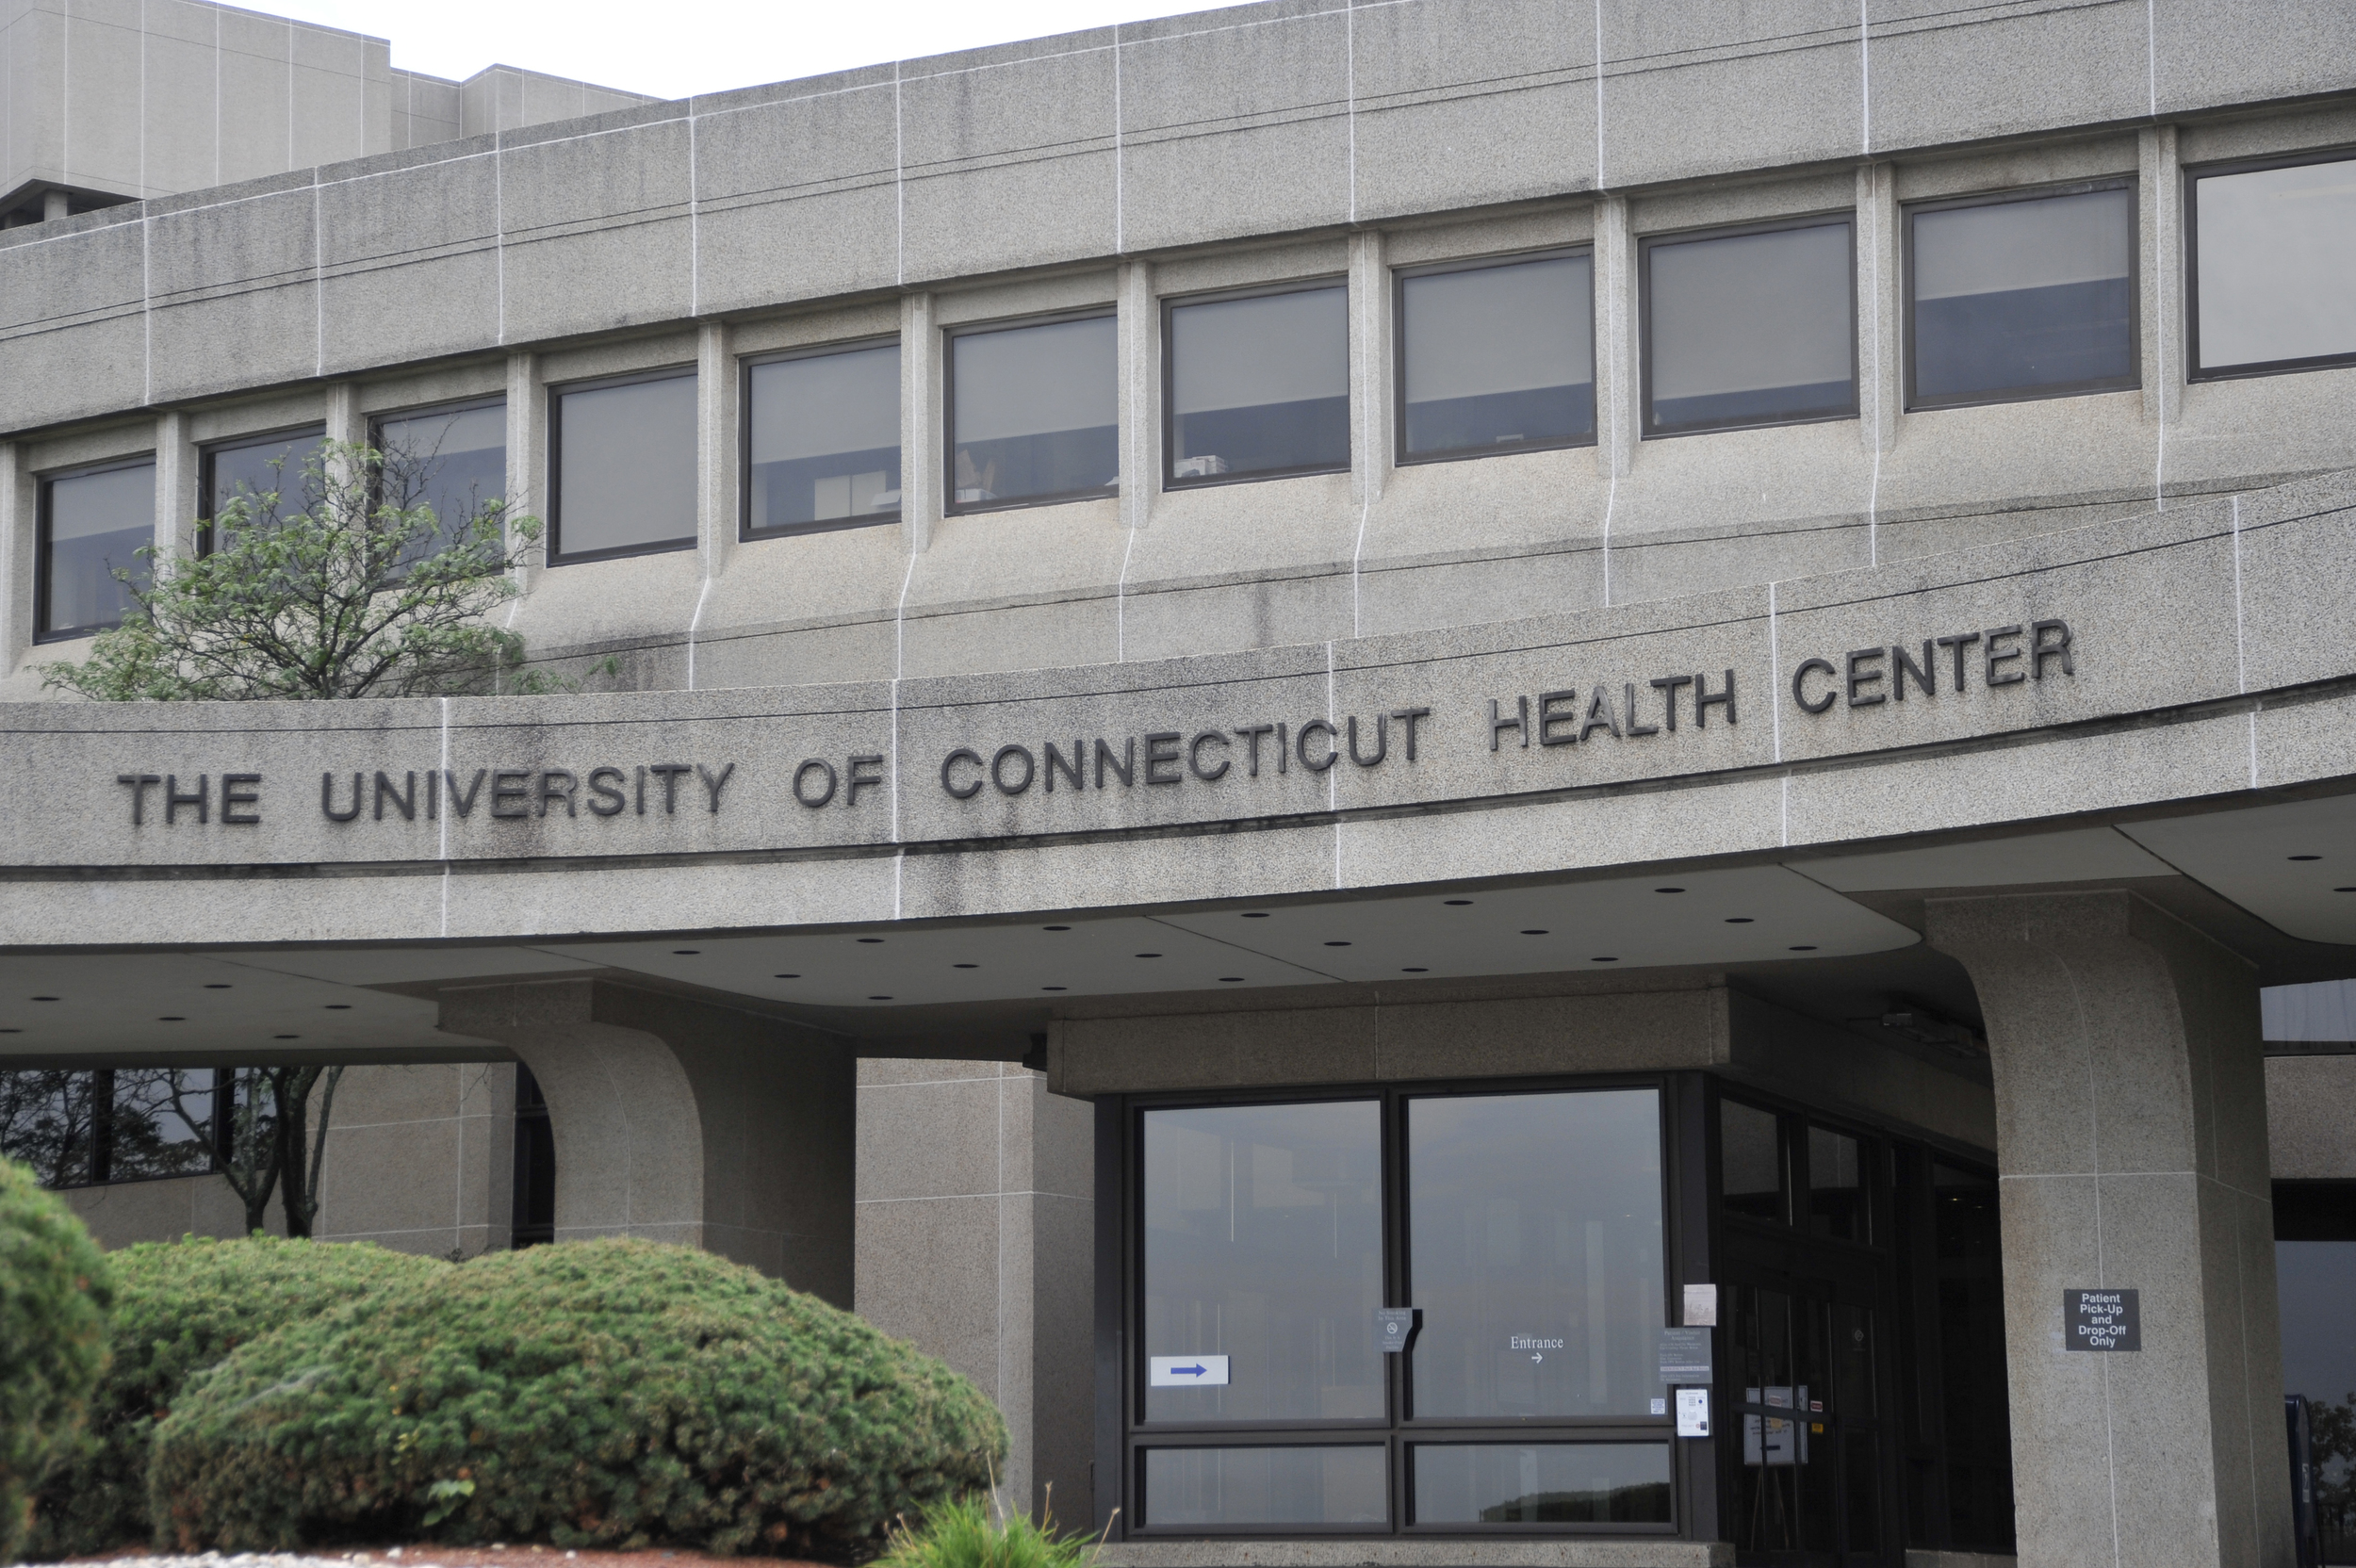 Residencies unable to keep up with medical schools, UConn